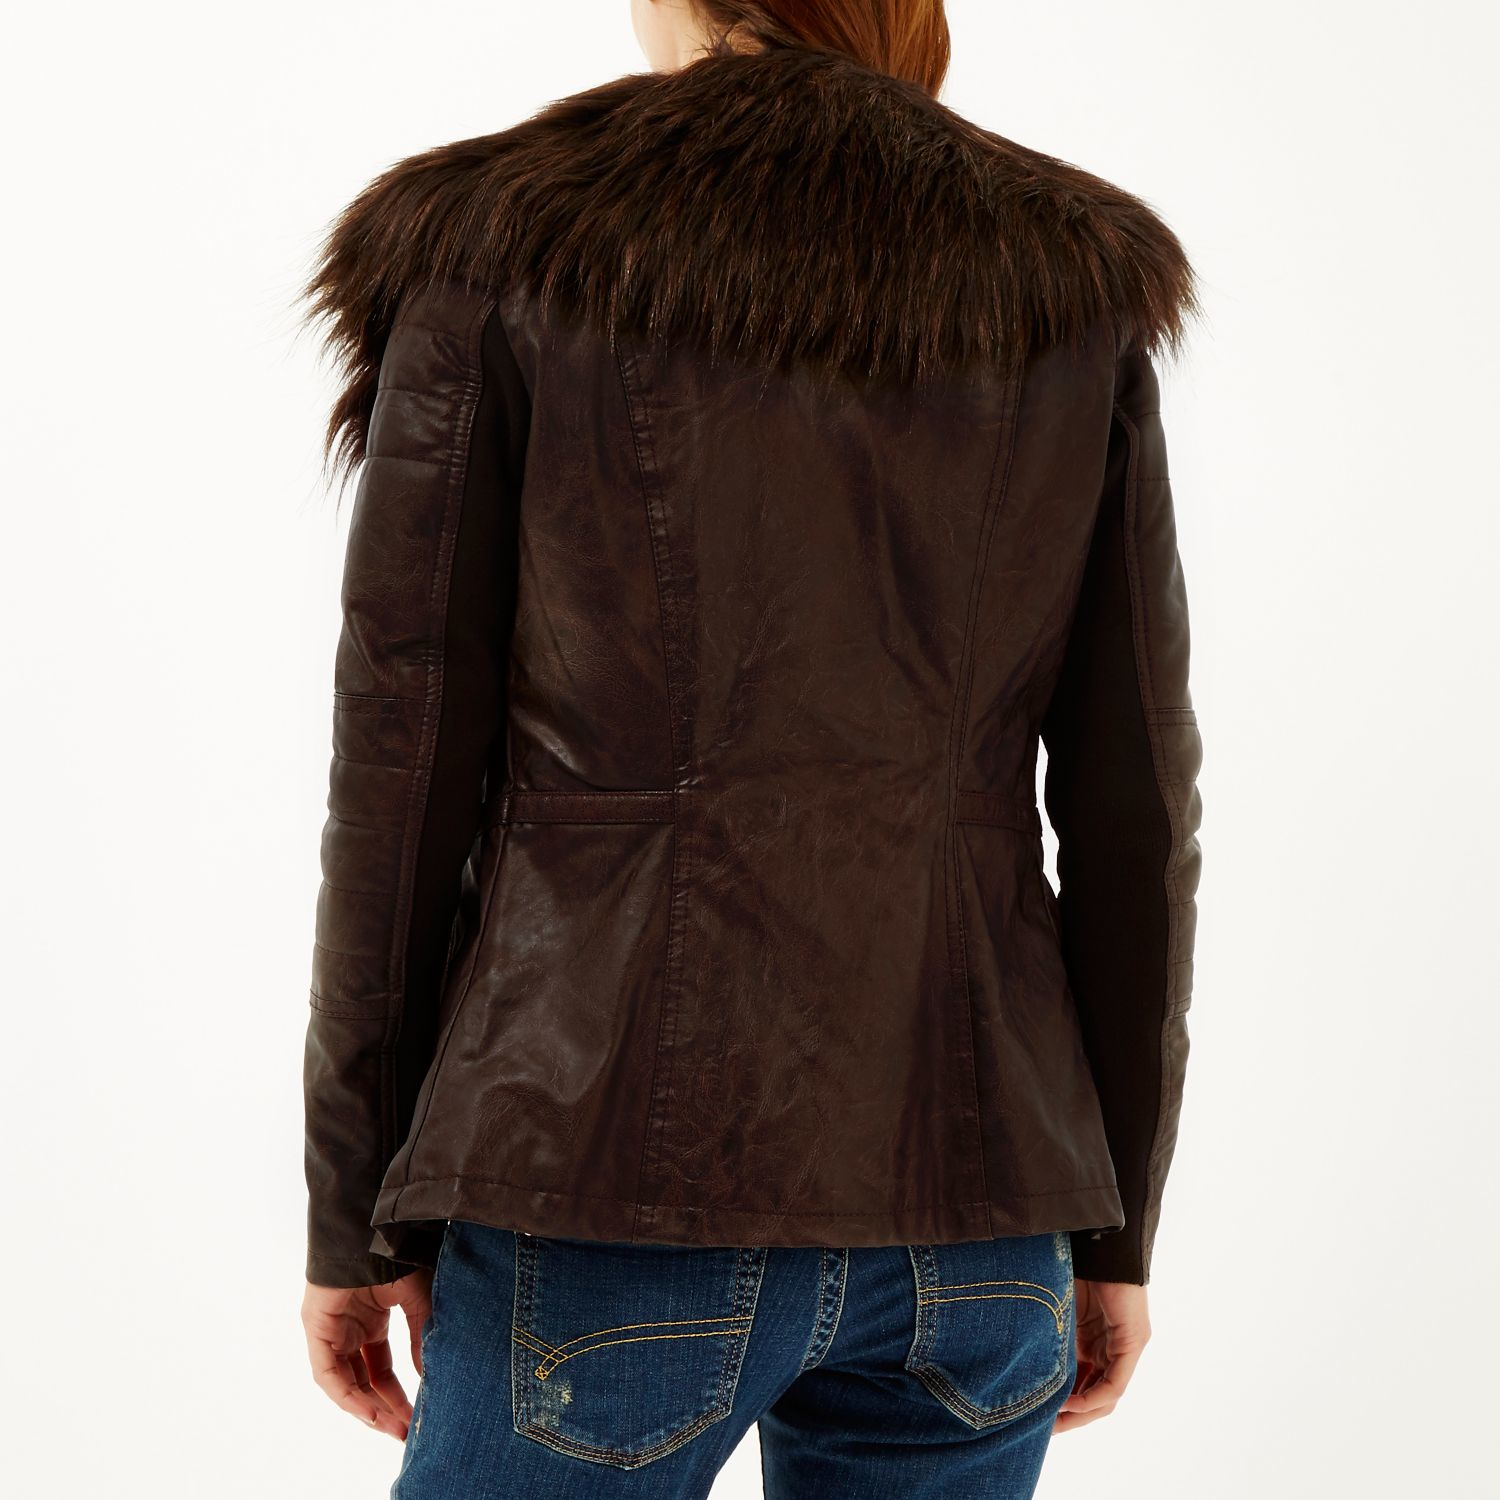 River island Dark Brown Leather-look Biker Jacket in Brown | Lyst